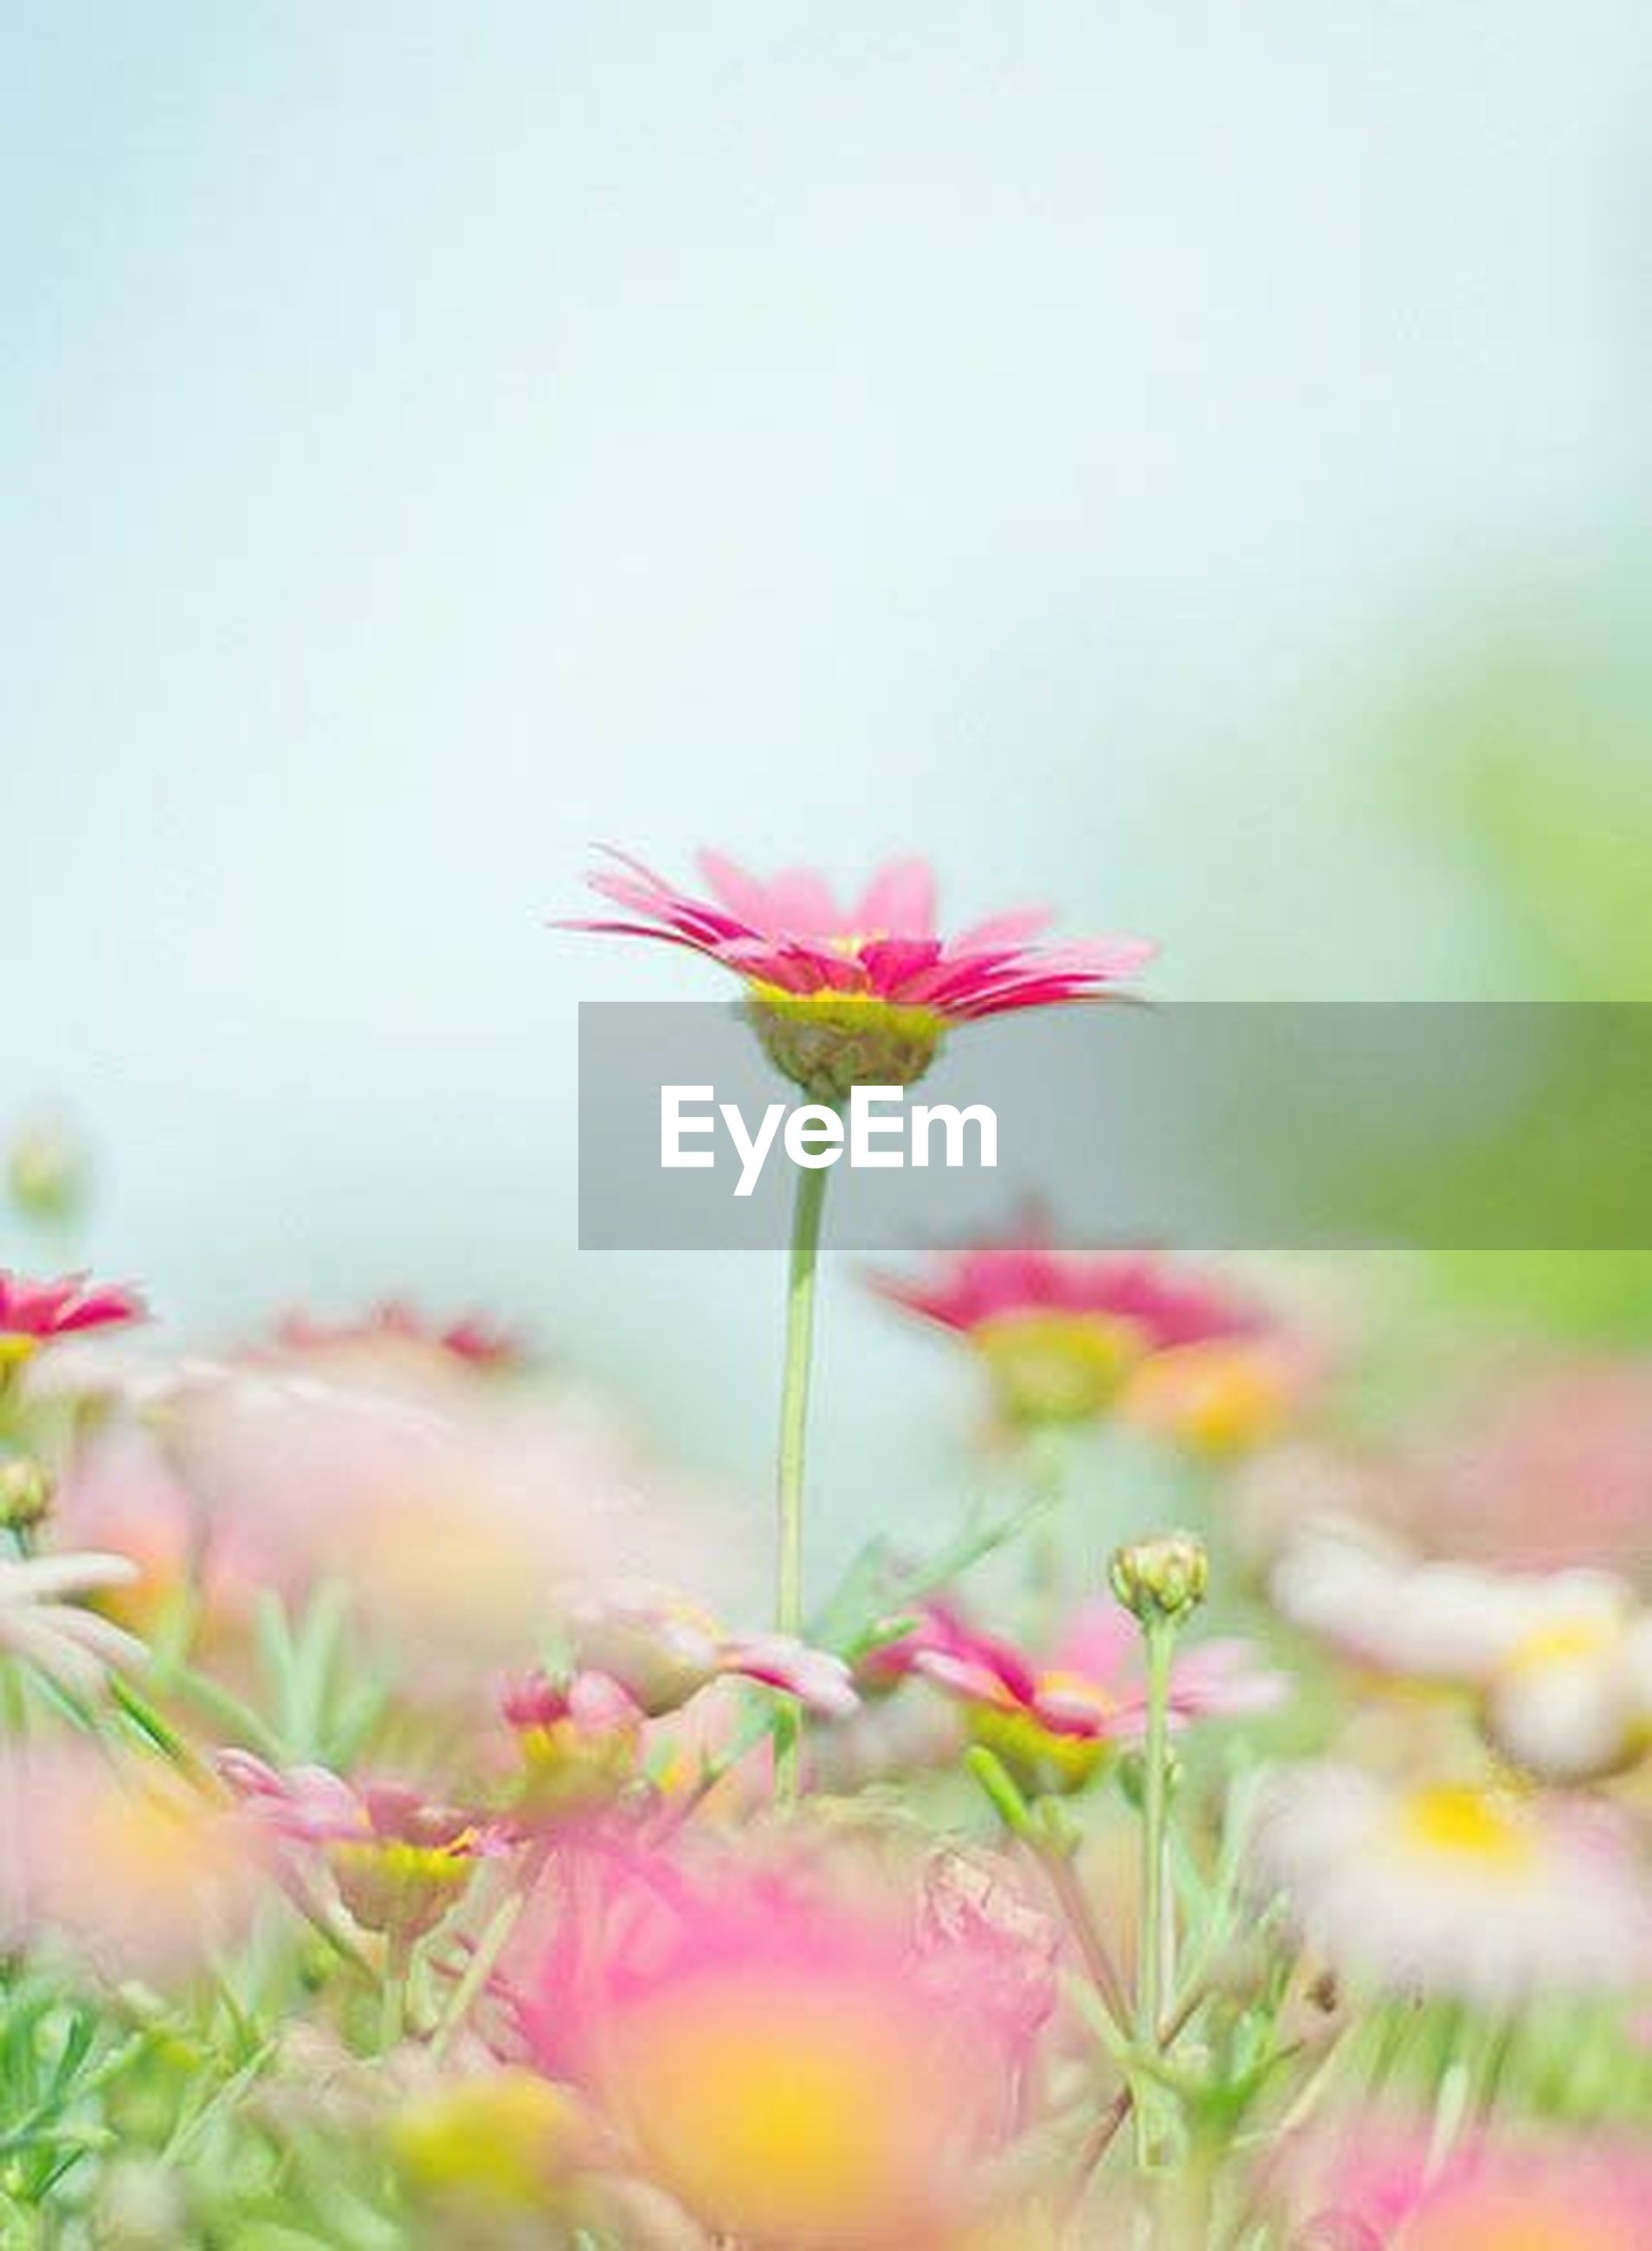 flower, freshness, fragility, petal, growth, flower head, beauty in nature, stem, pink color, focus on foreground, blooming, nature, plant, bud, close-up, selective focus, in bloom, blossom, field, botany